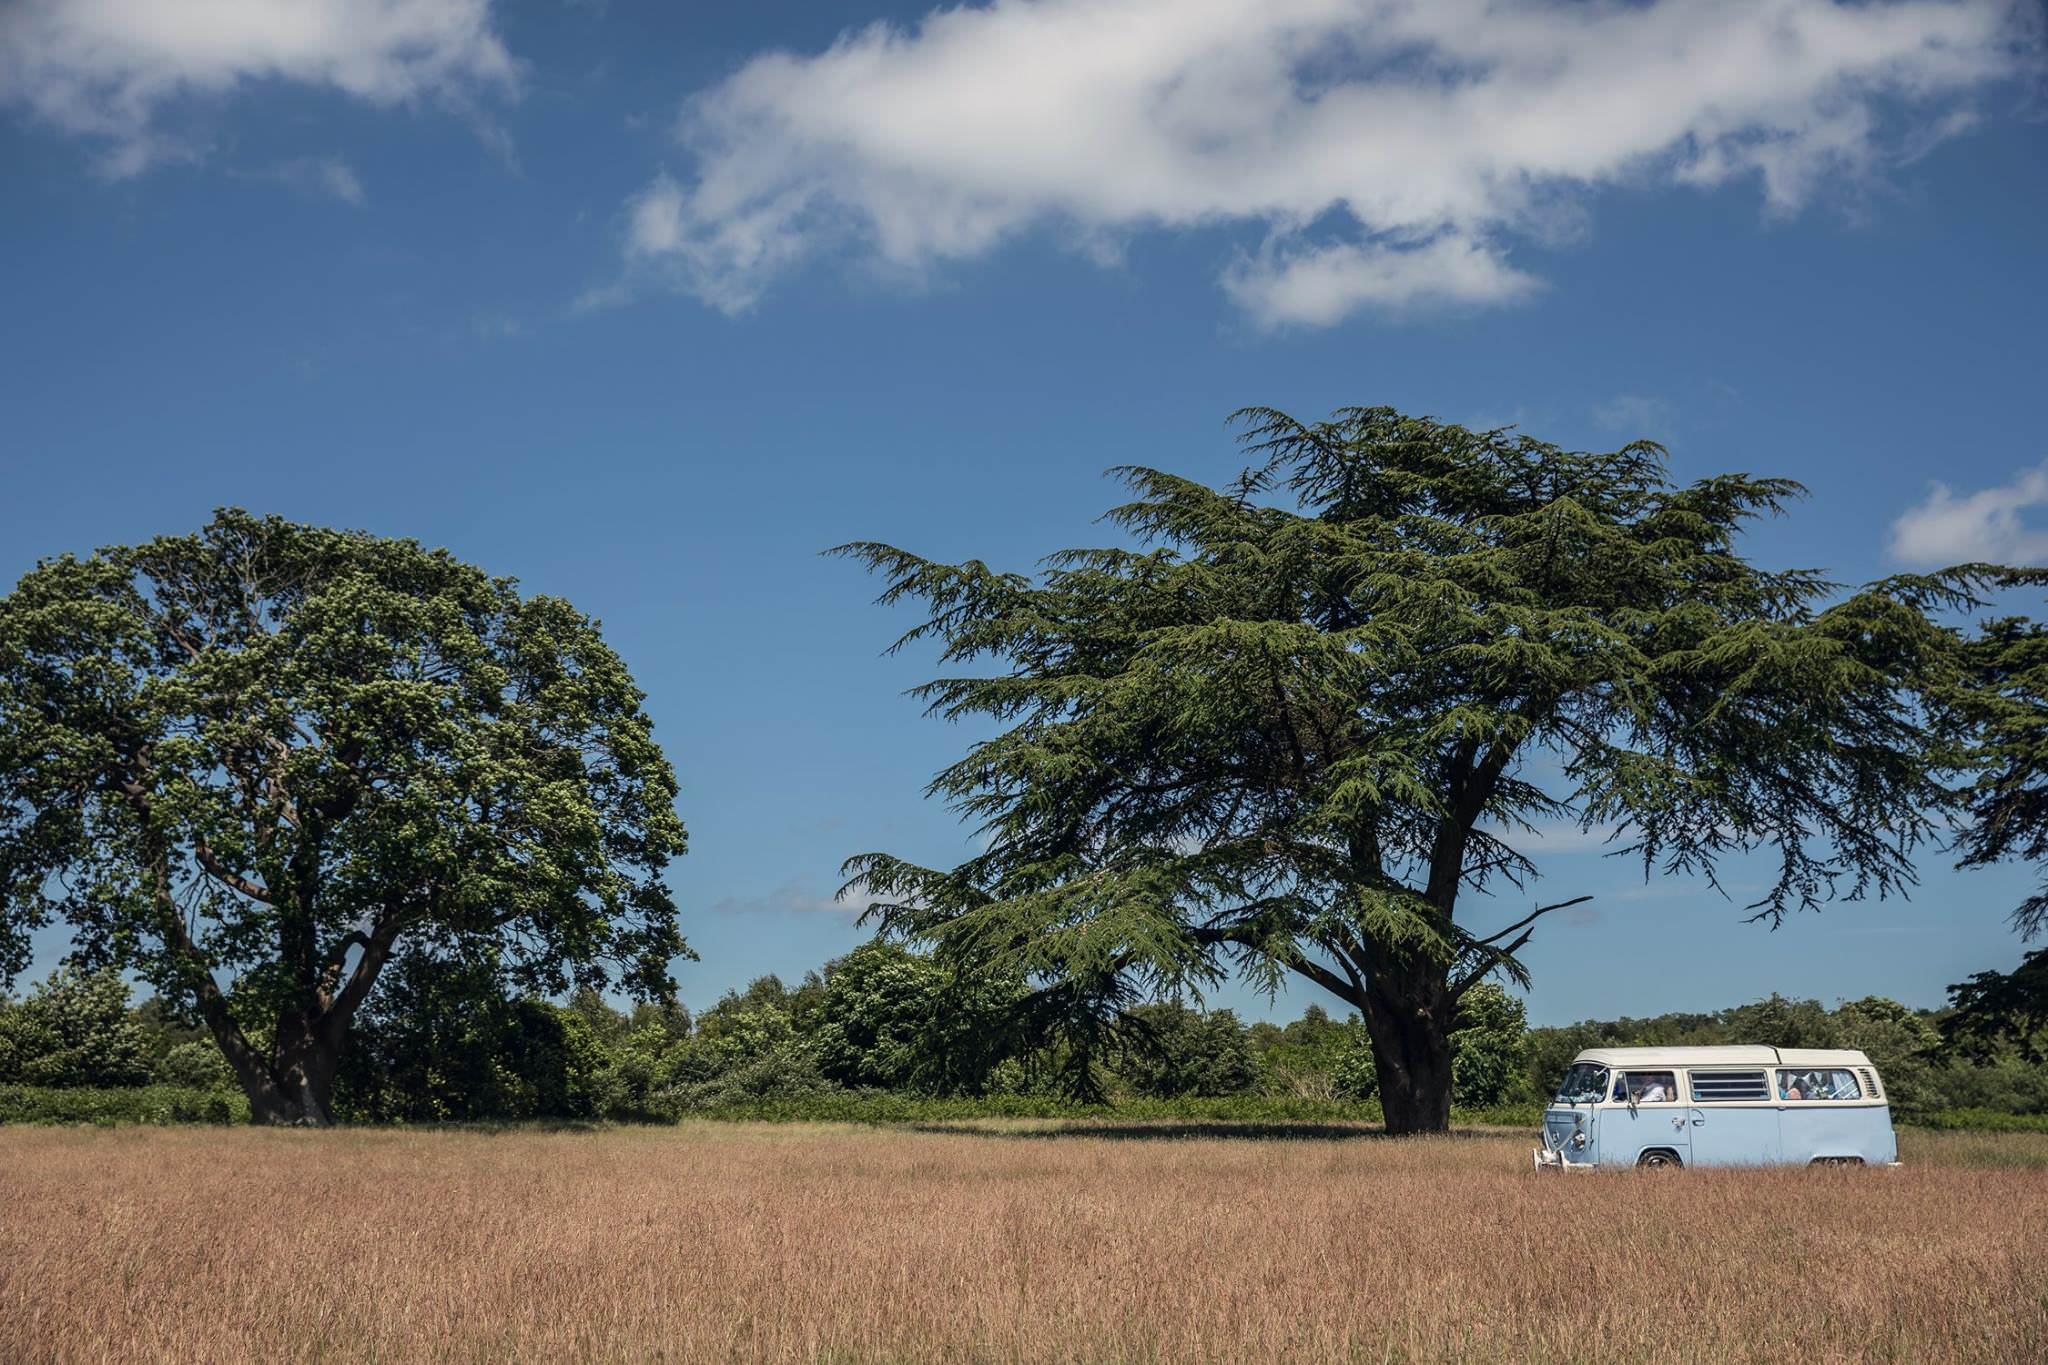 campervan arriving at a wedding with bride and bridesmaids